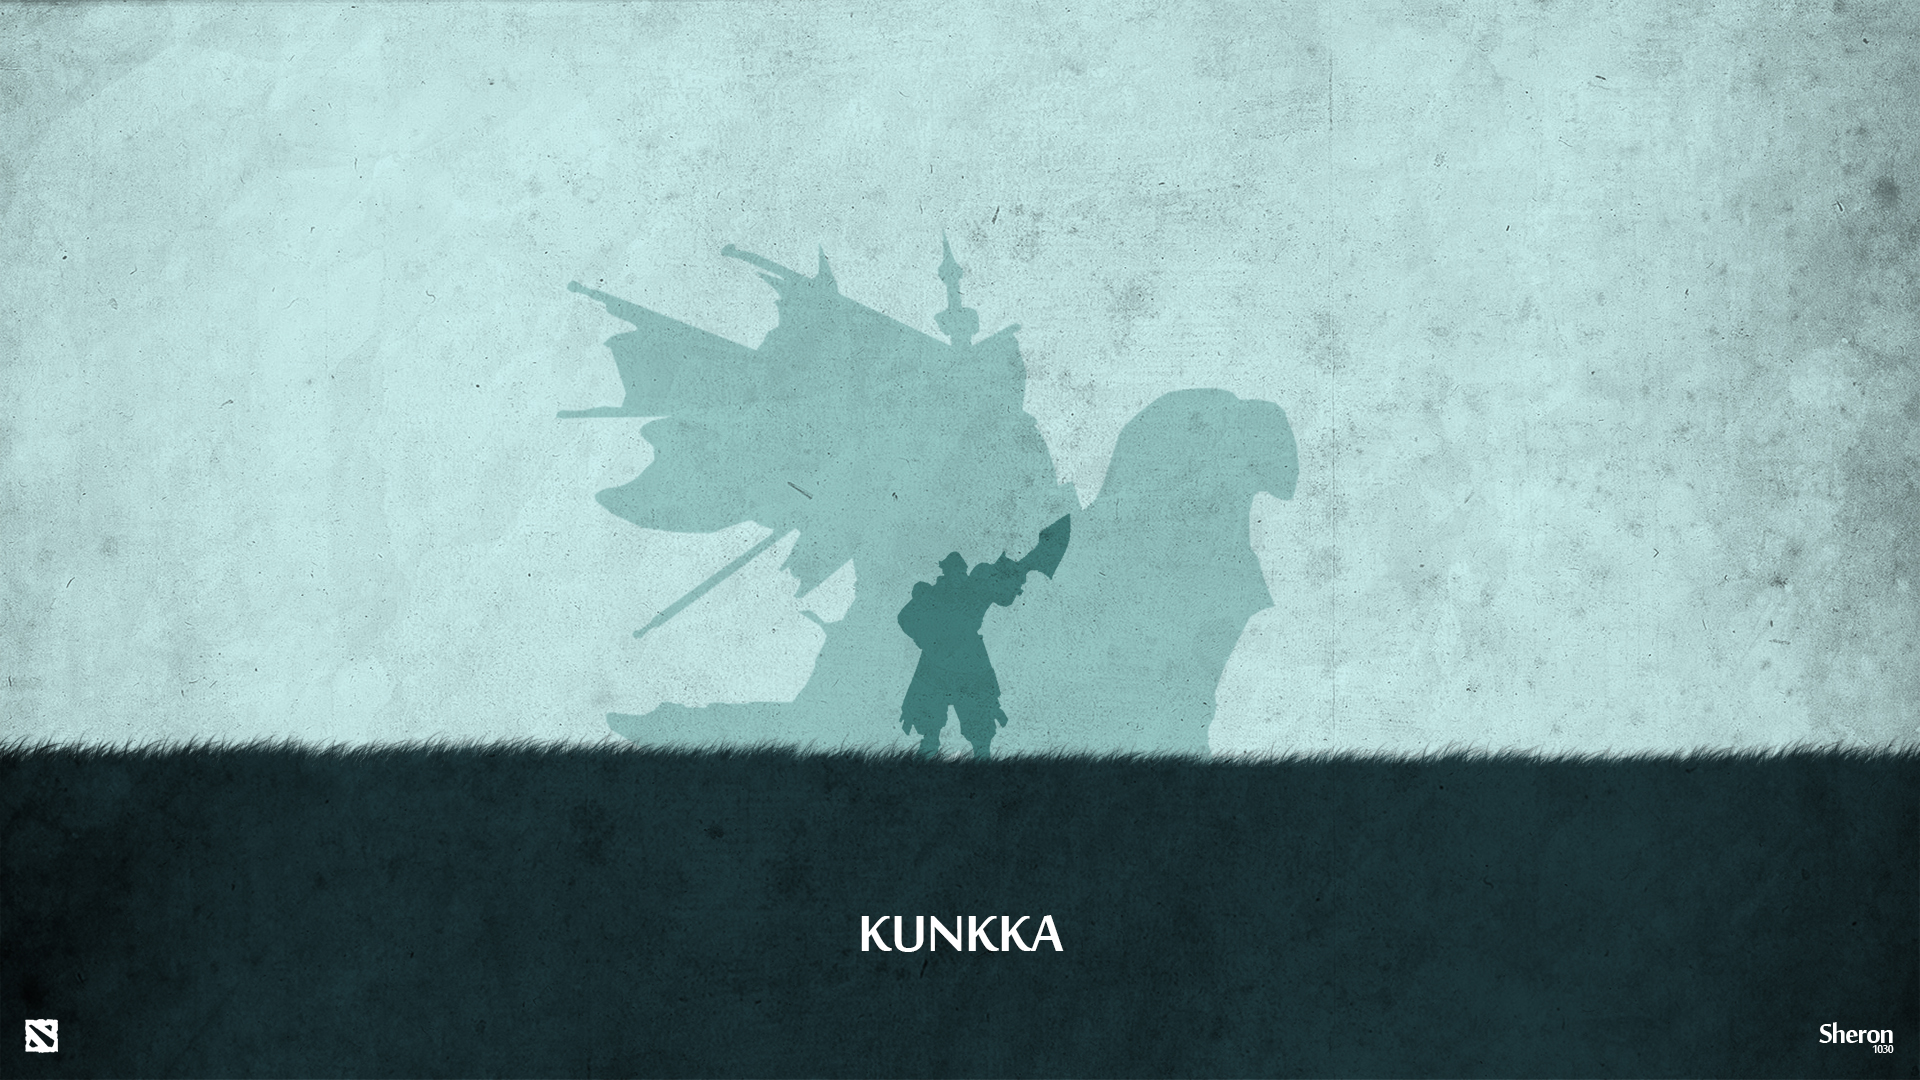 Dota 2 - Kunkka Wallpaper by sheron1030